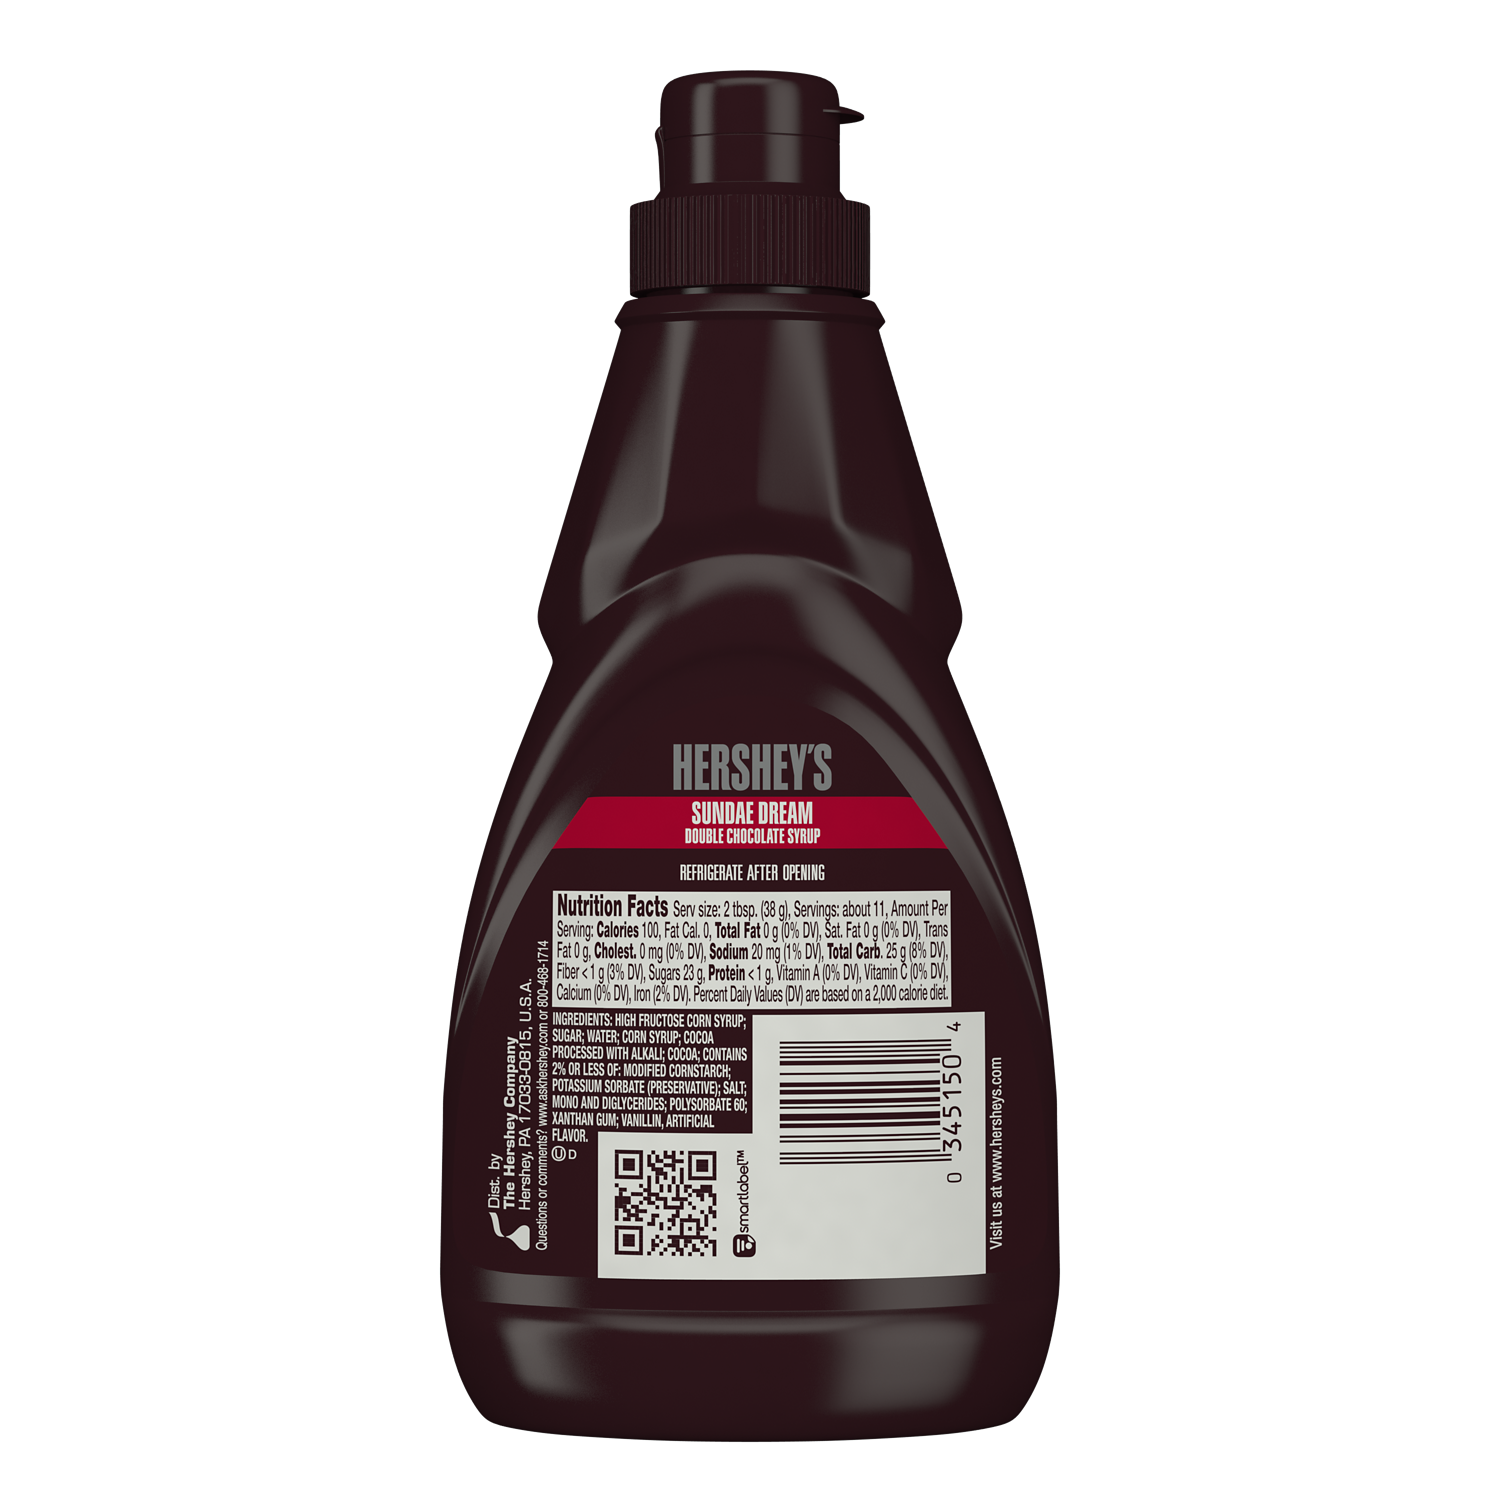 HERSHEY'S SUNDAE DREAM Double Chocolate Syrup, 15 oz bottle - Back of Package